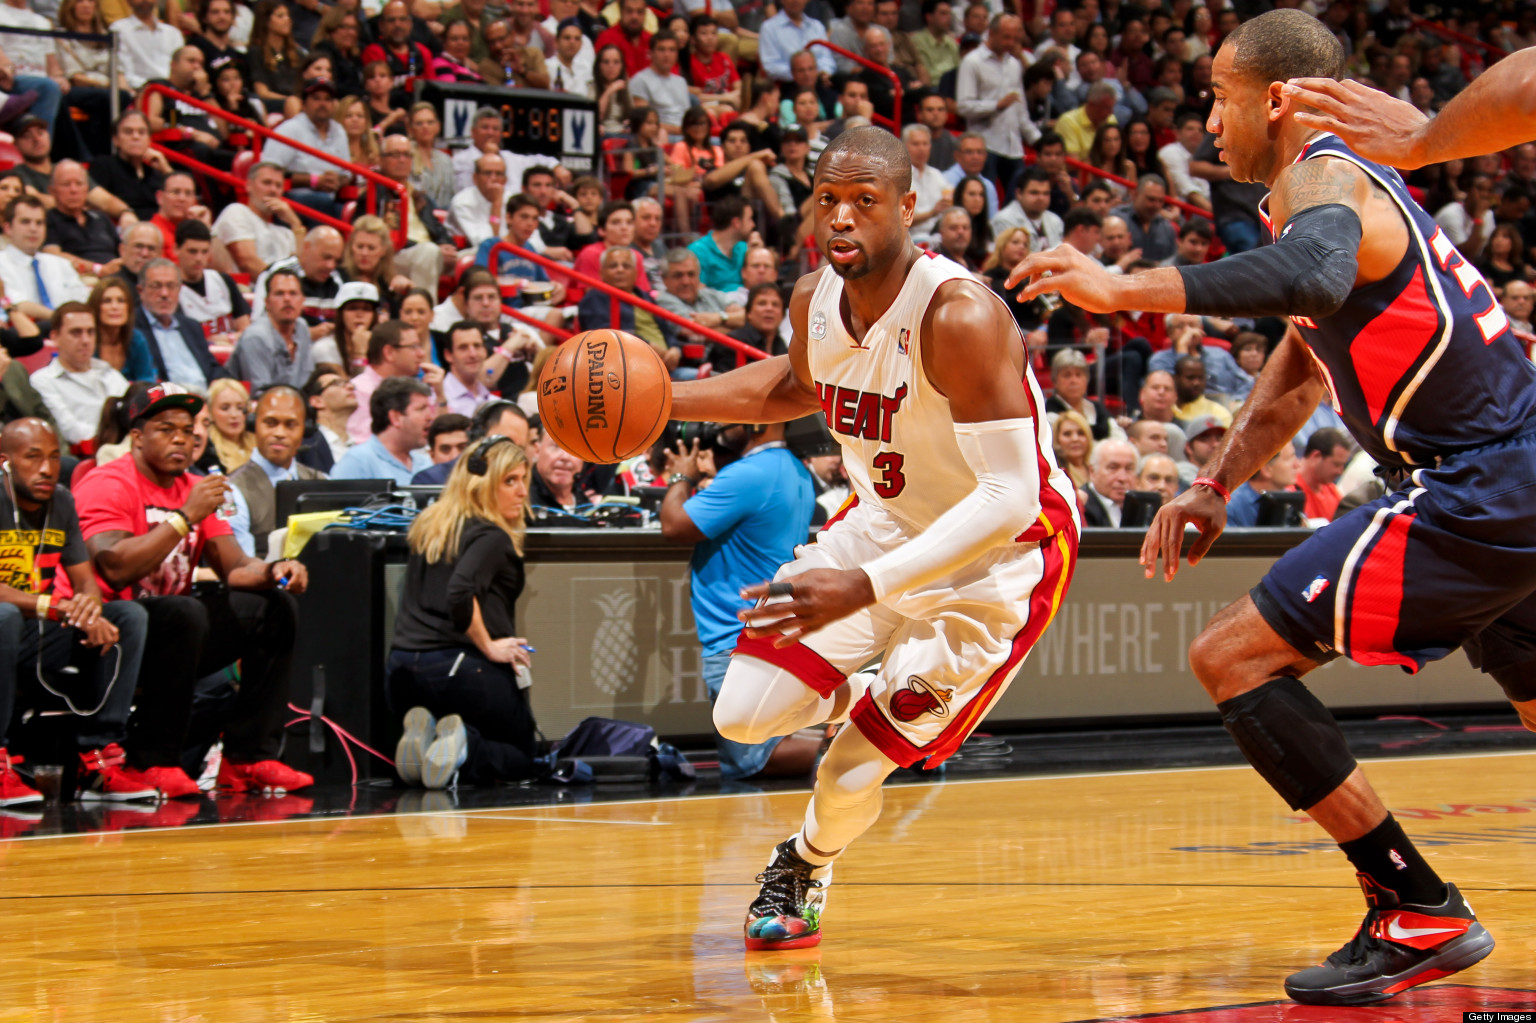 A Miamian's Tribute to Dwayne Wade